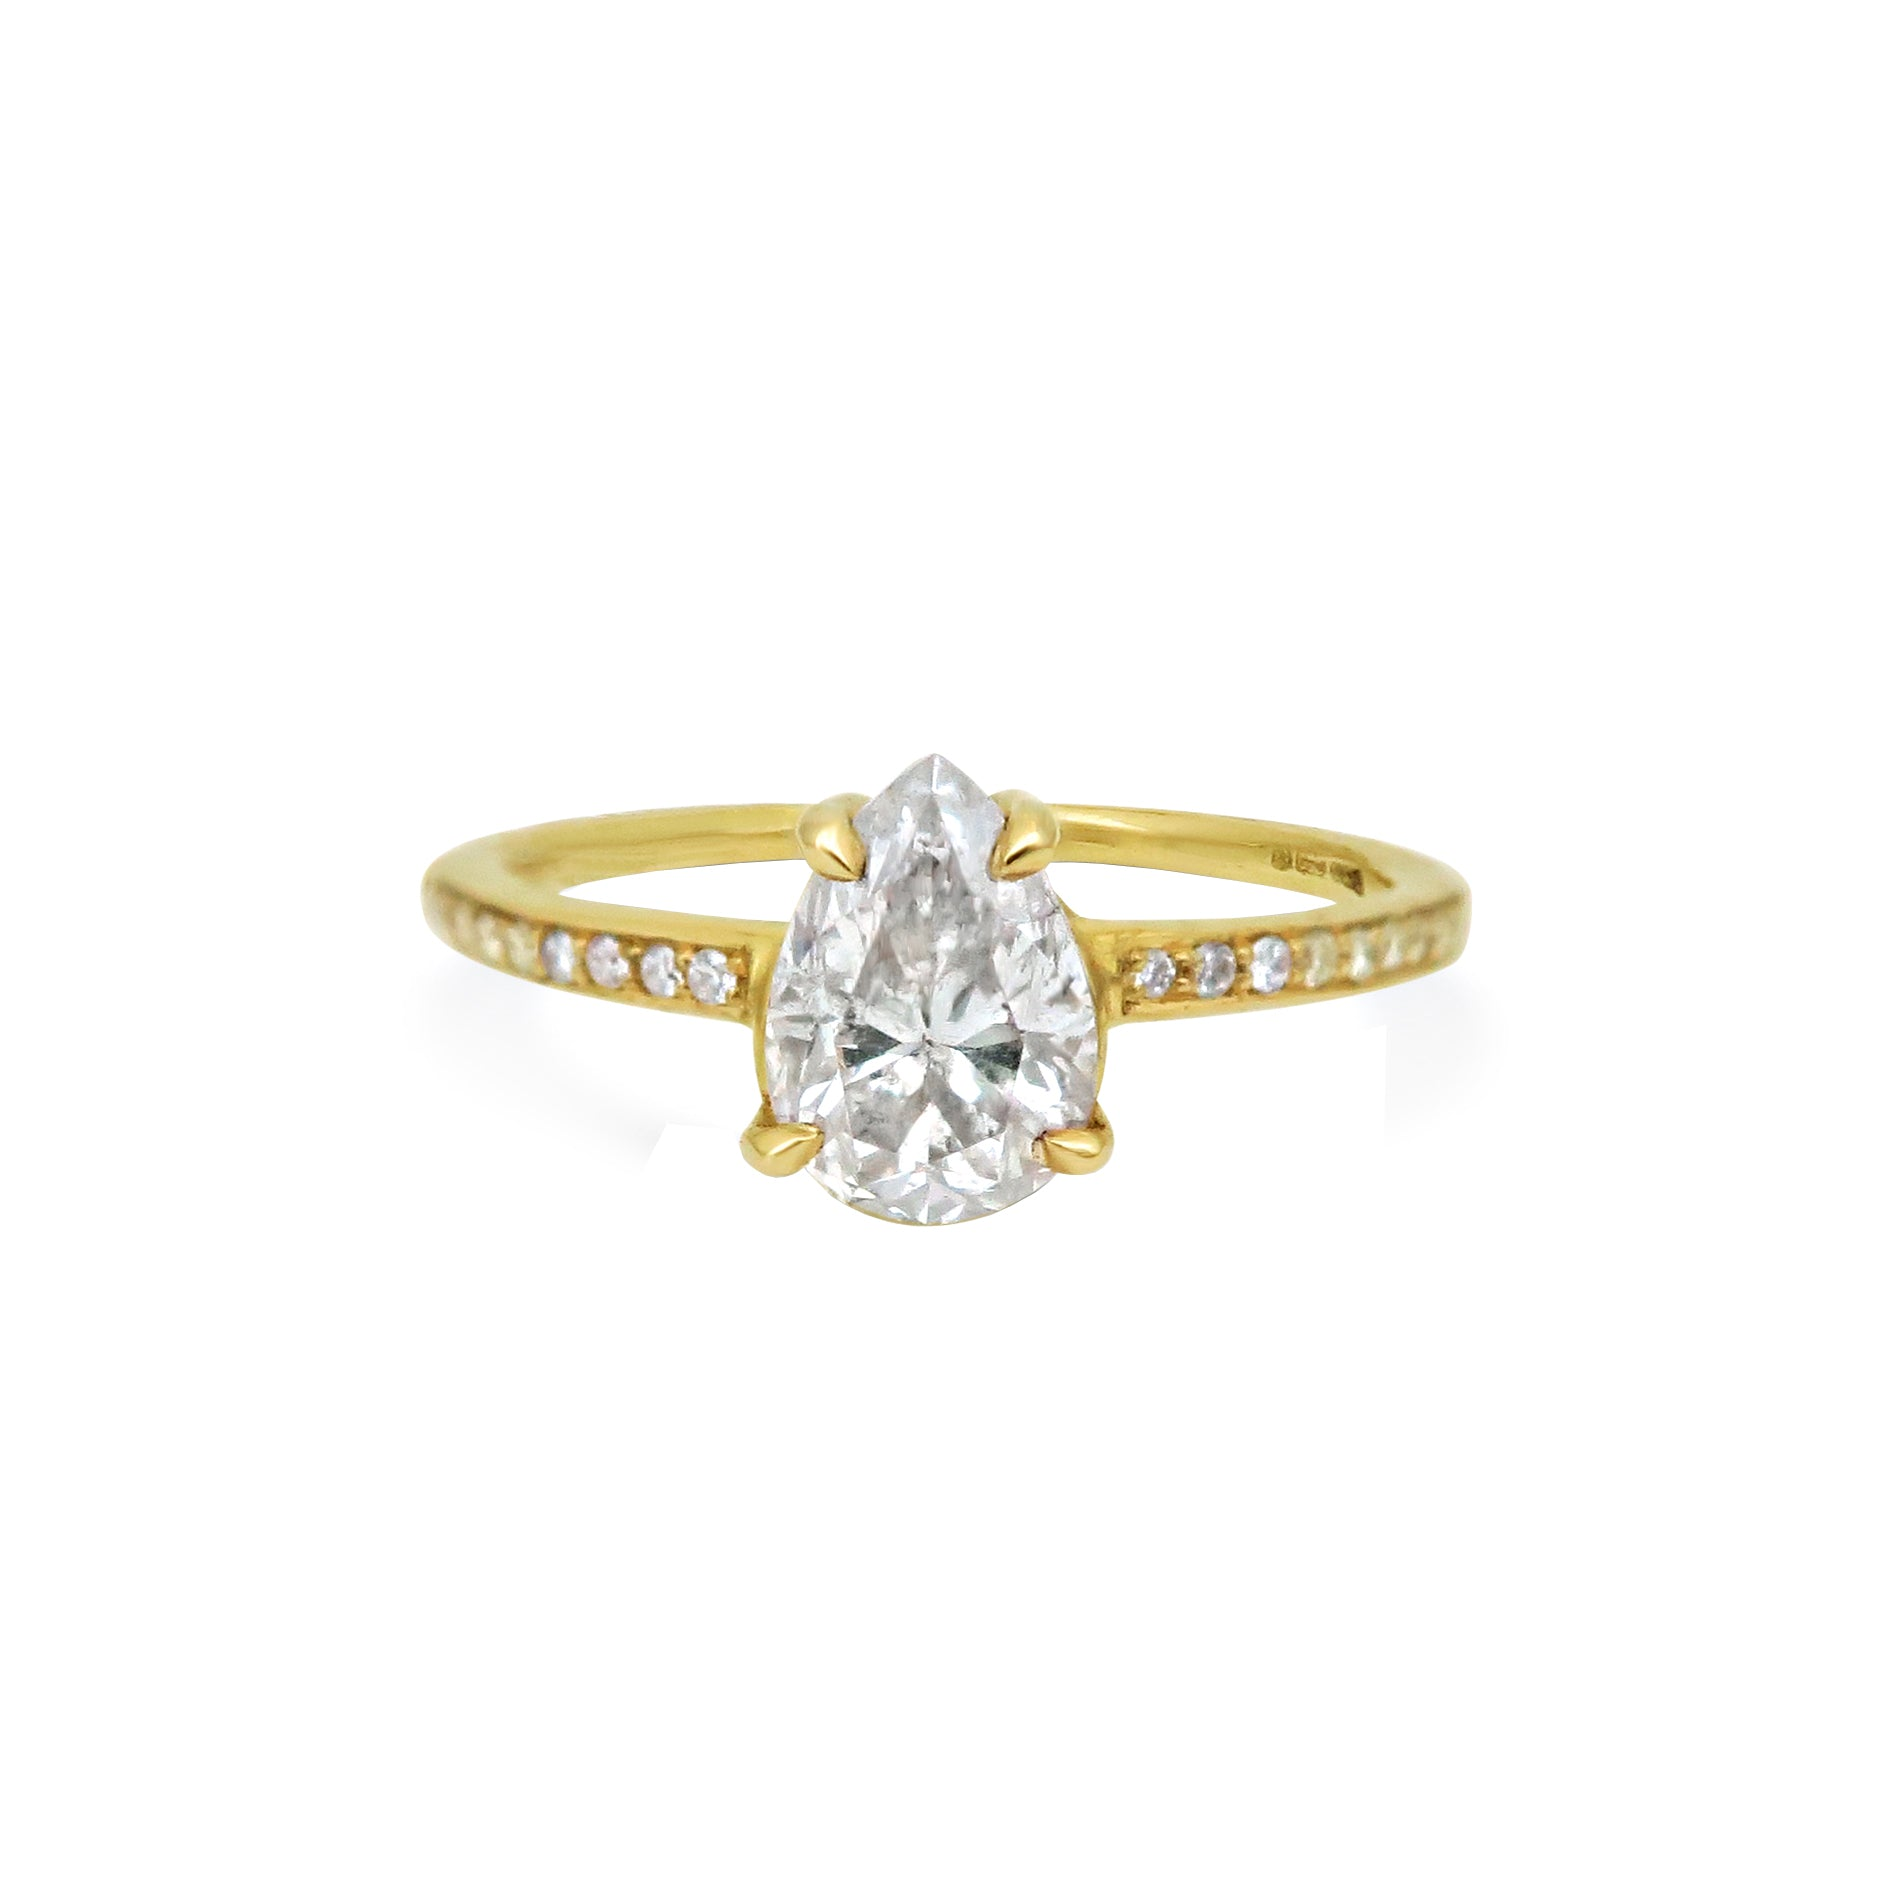 Hammered 18ct Yellow Gold and Pear Diamond Engagement Ring